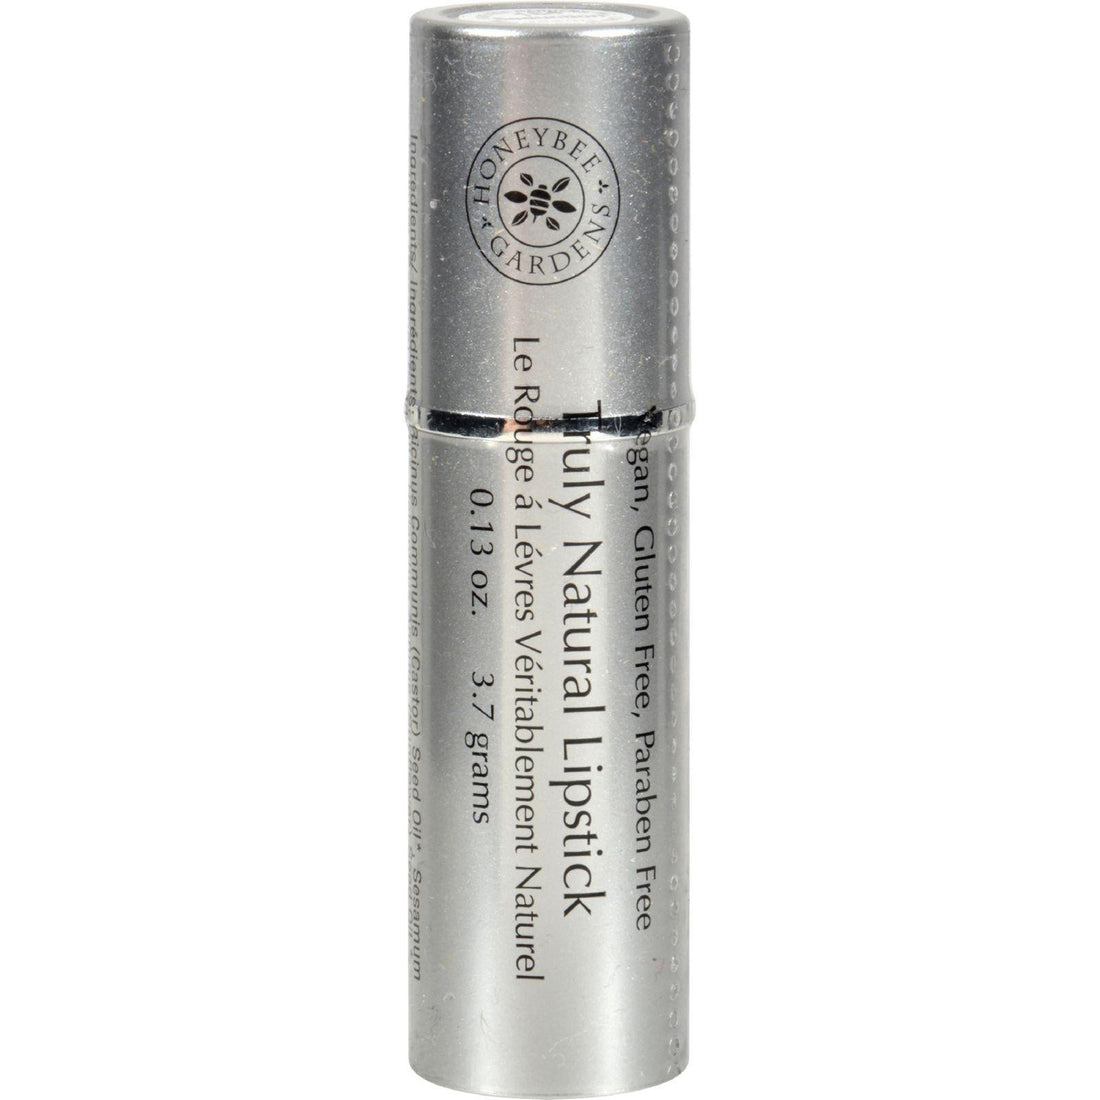 Mother Mantis: Honeybee Gardens Truly Natural Lipstick Seduction - 0.13 Oz Honeybee Gardens